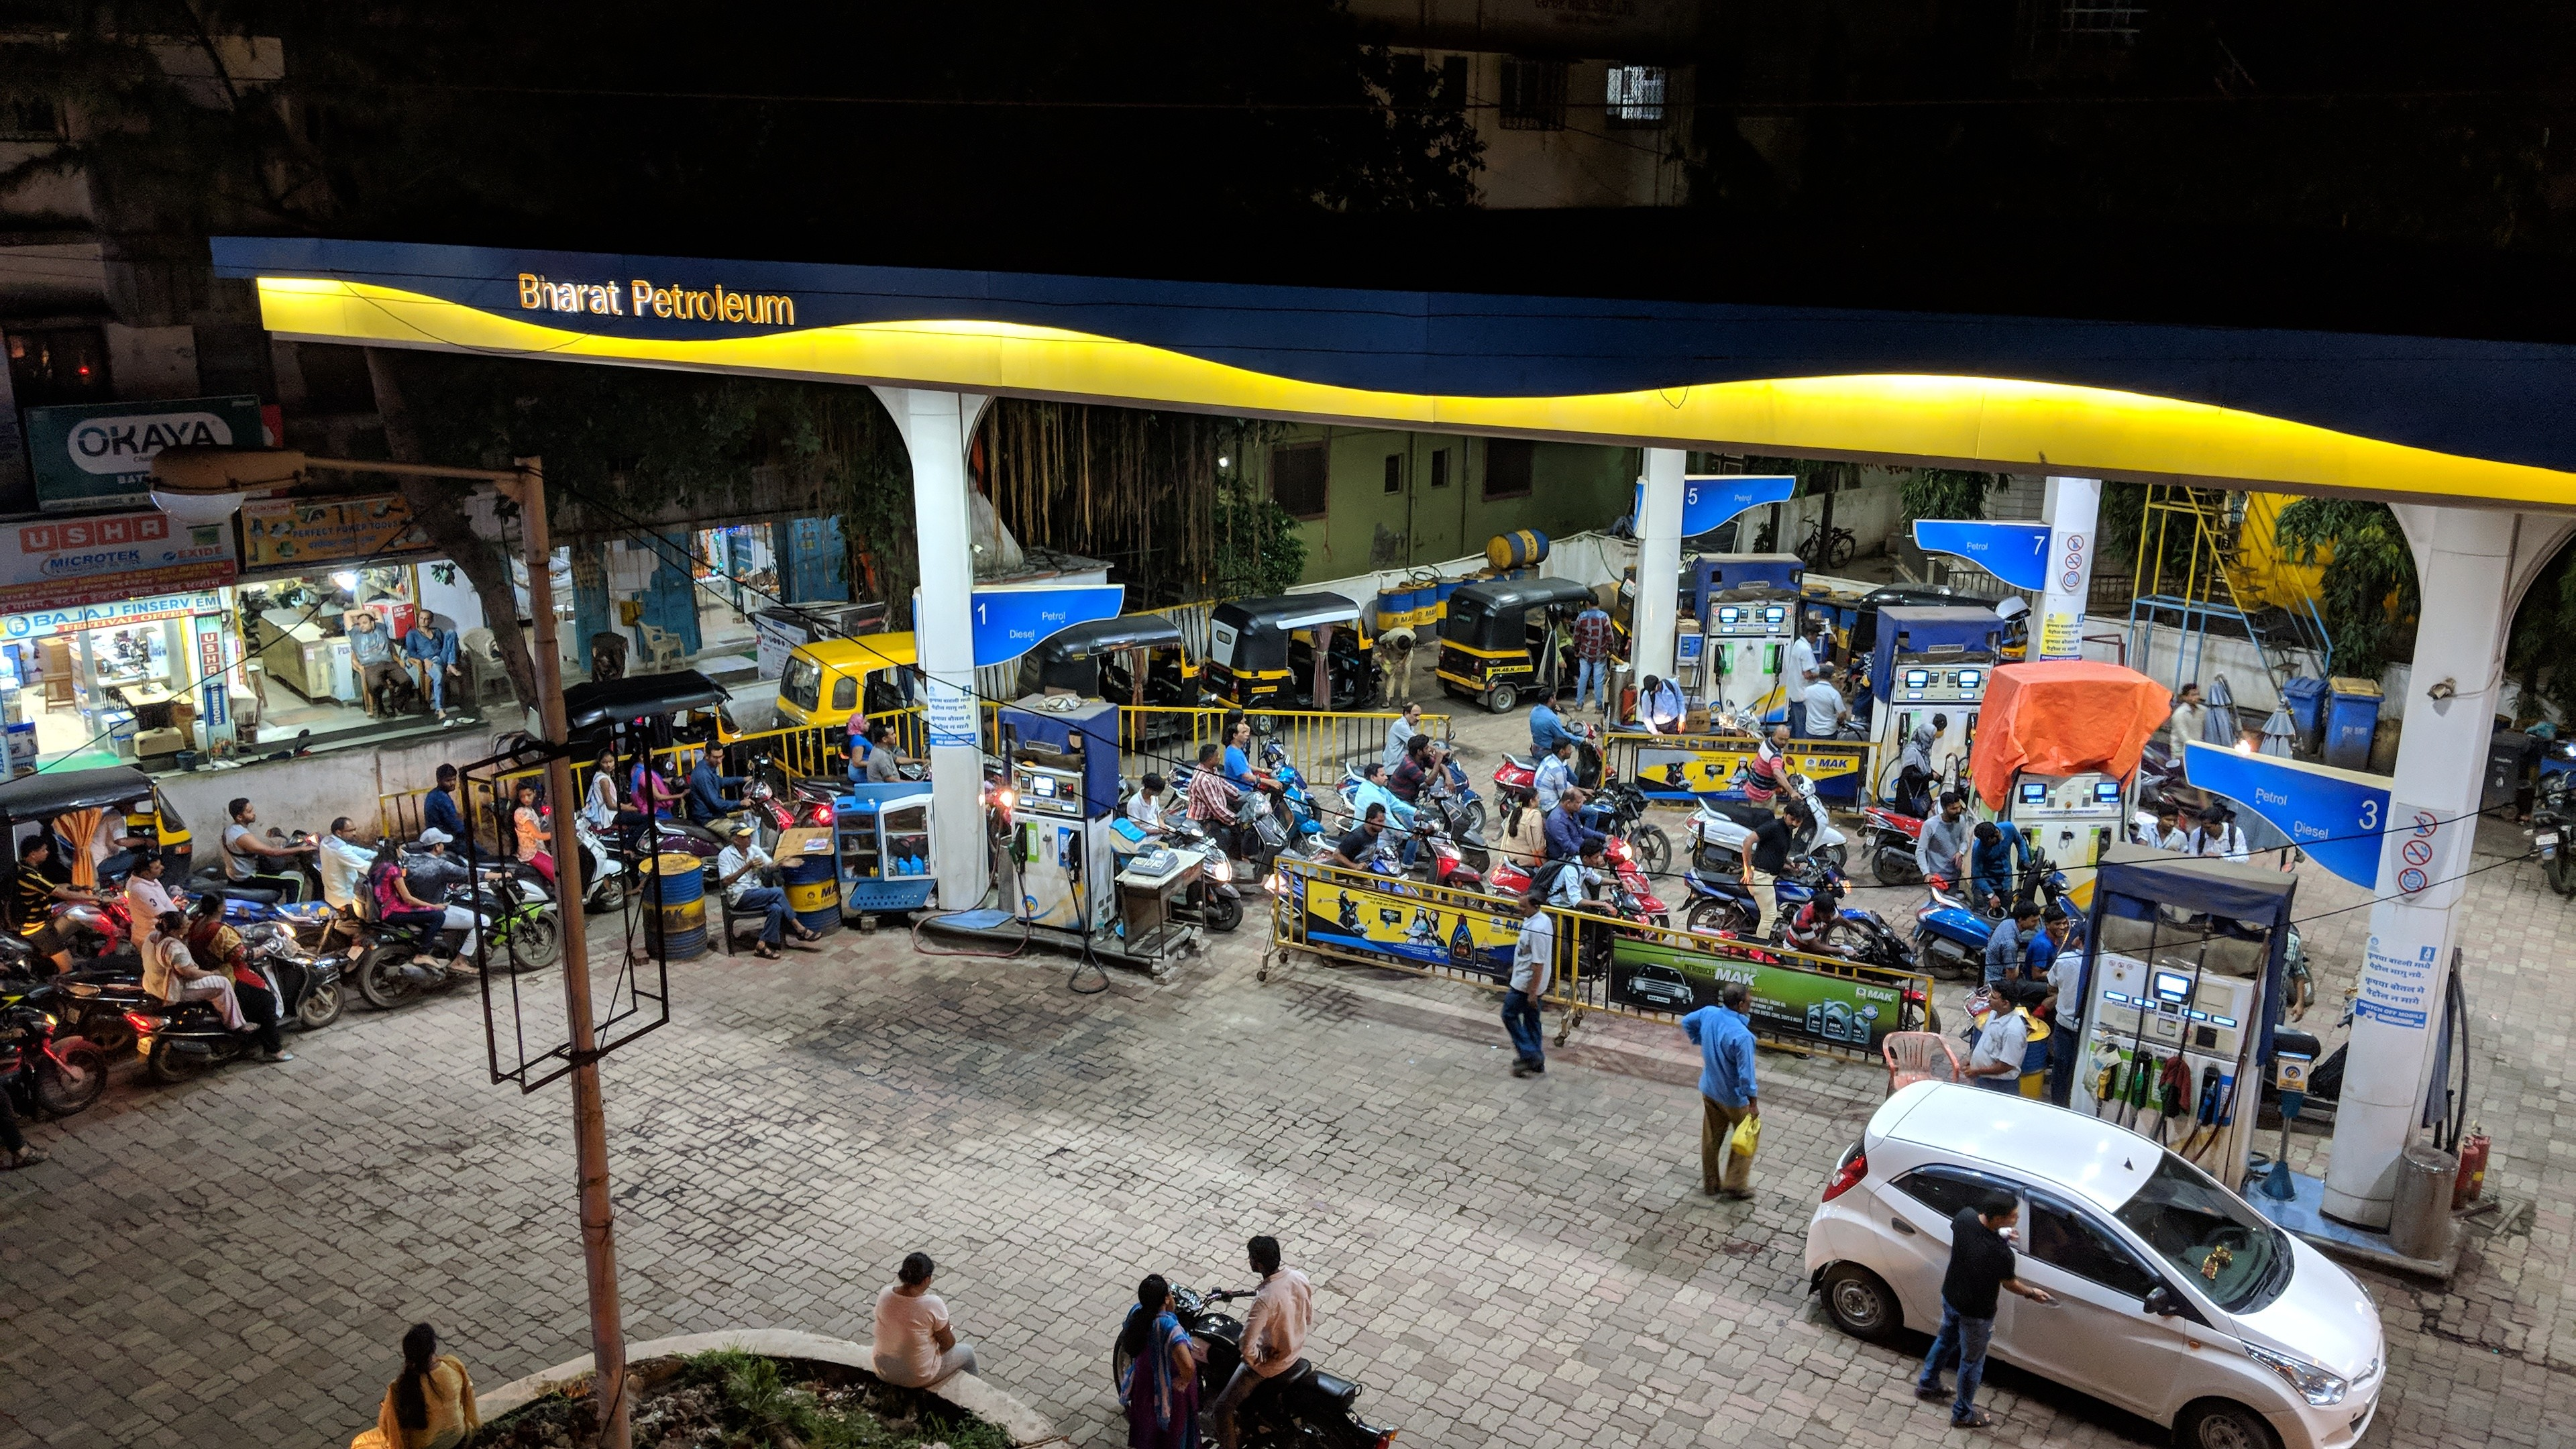 Photo of a long line for gas at a station in India.